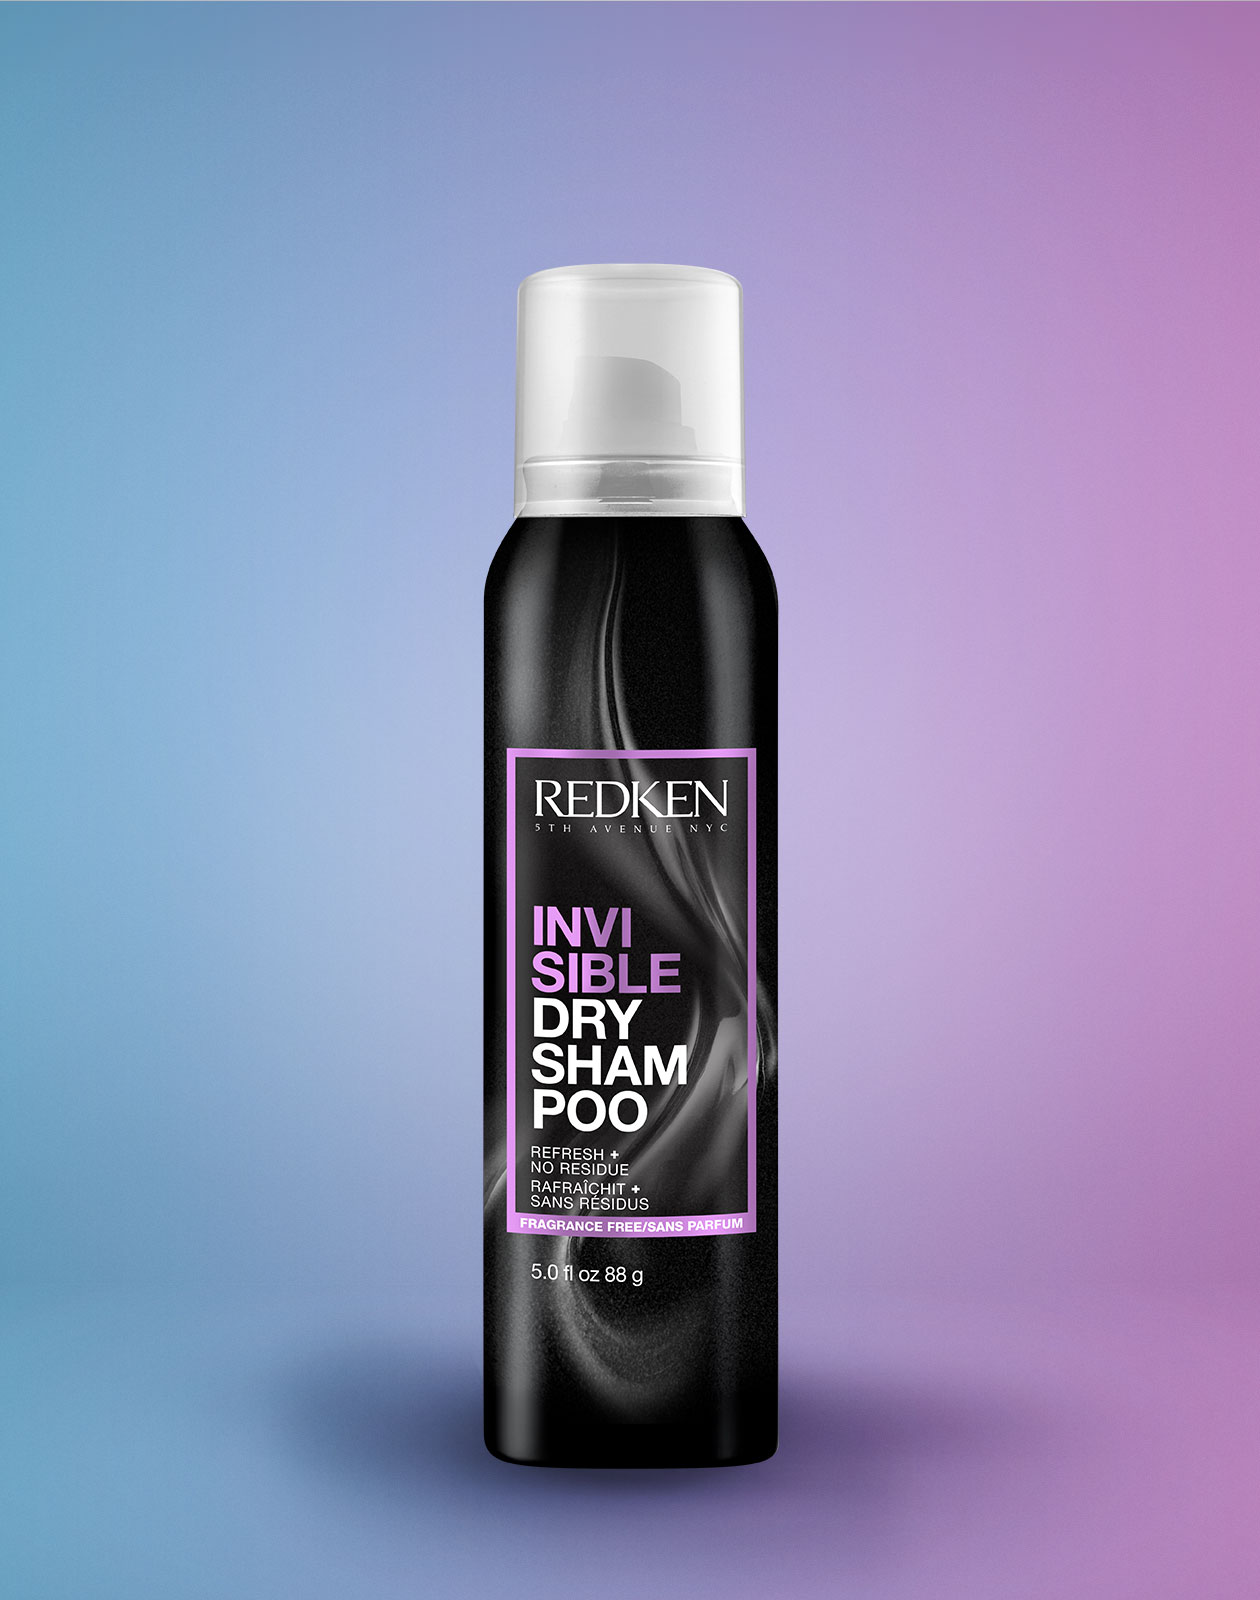 Redken-2020-Product-Invisible-Dry-Shampoo-1260x1600-Color